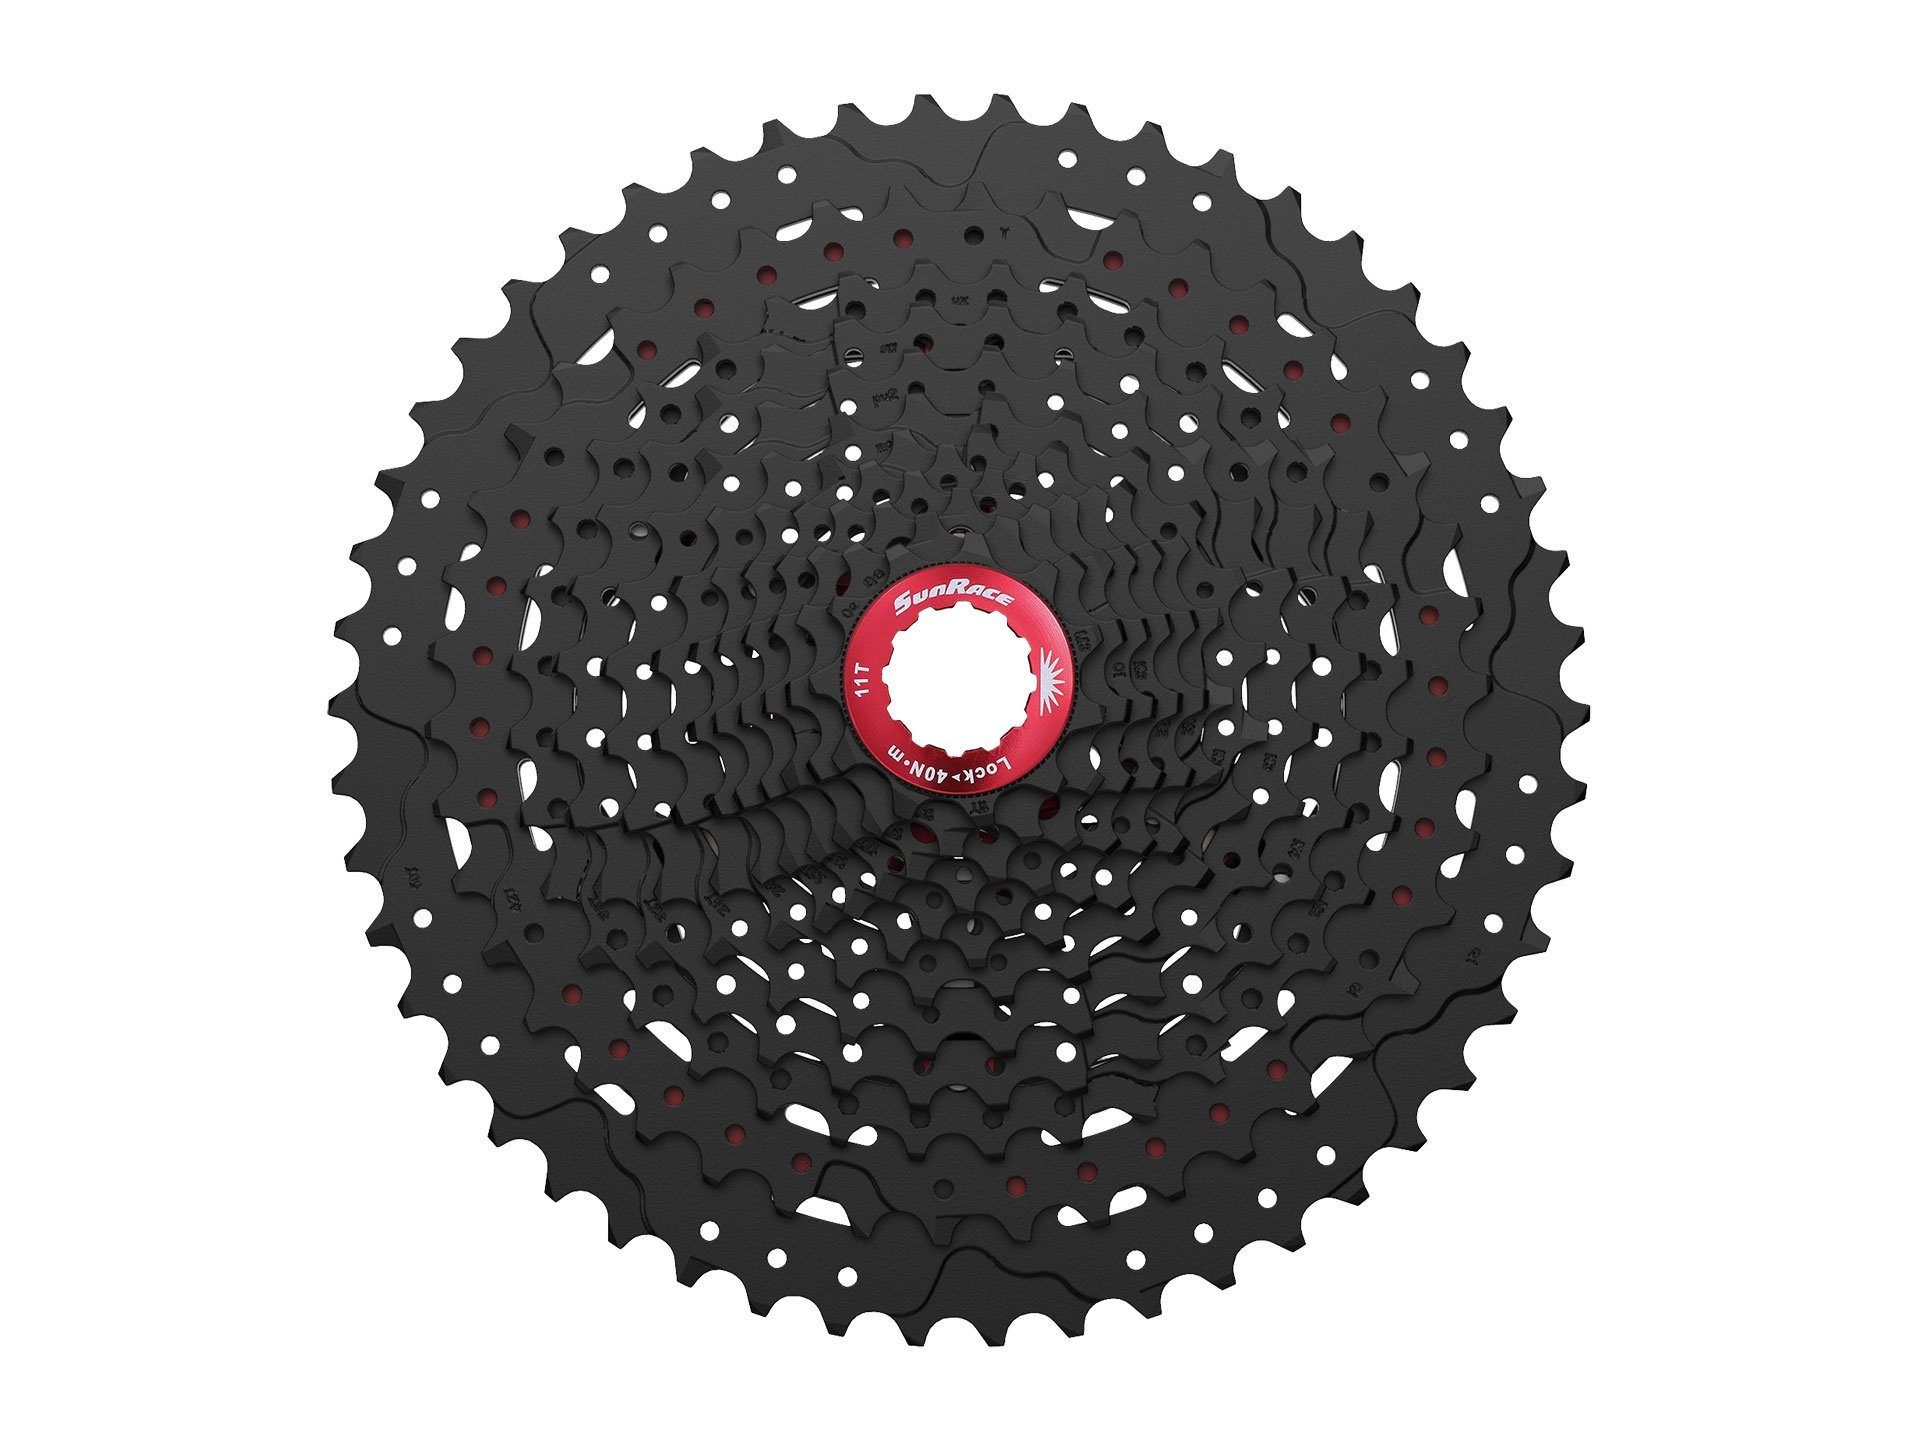 Sunrace 12-speed 11-50T cassette freewheel CSMZ90 WA5 wide ratio MTB in Black with RD extender